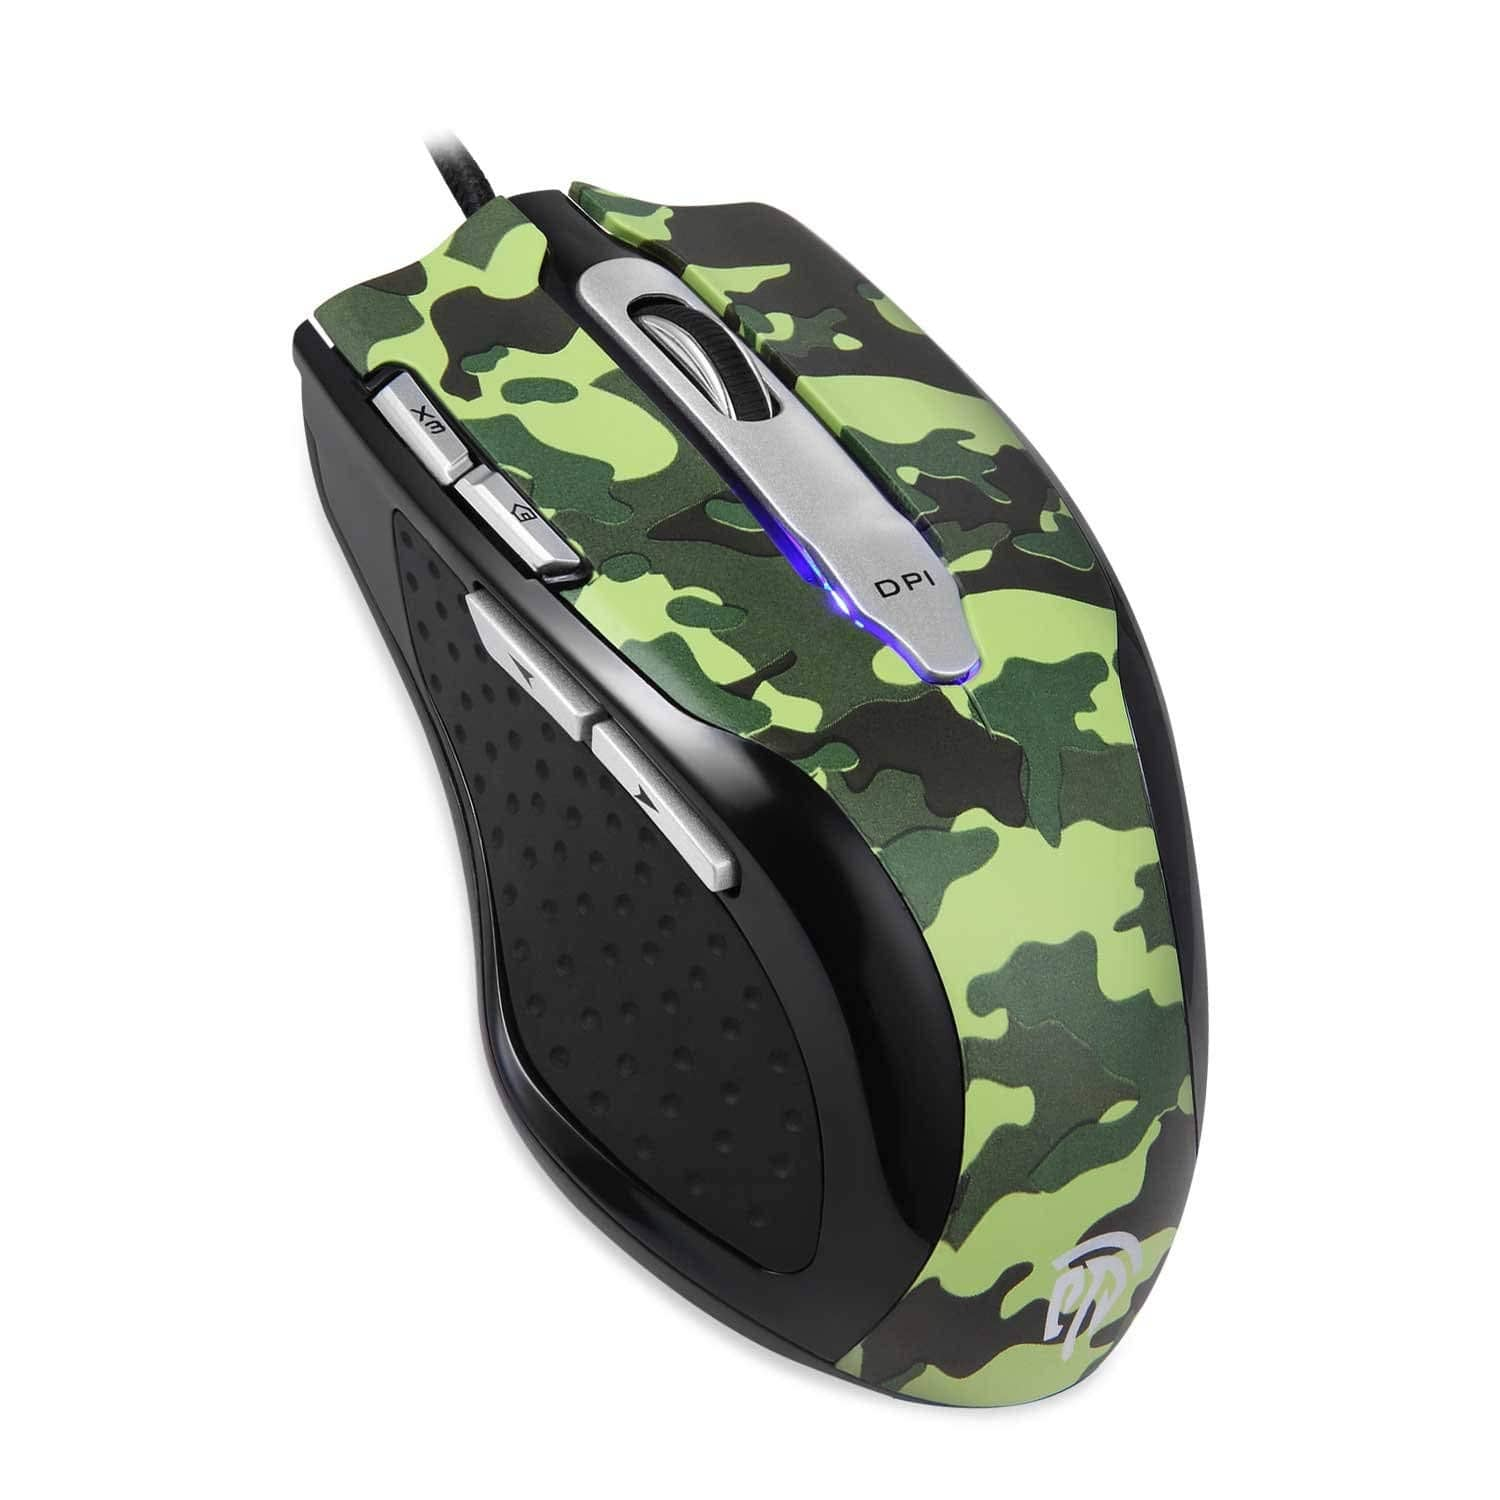 75% OFF - Wired Gaming Mouse, [8200DPI] [6 Programmable Buttons] Camouflage Gaming Mouse, 1000 Polling Rate 8 buttons for Gamers/Office Workers (Camouflage) - $7.49